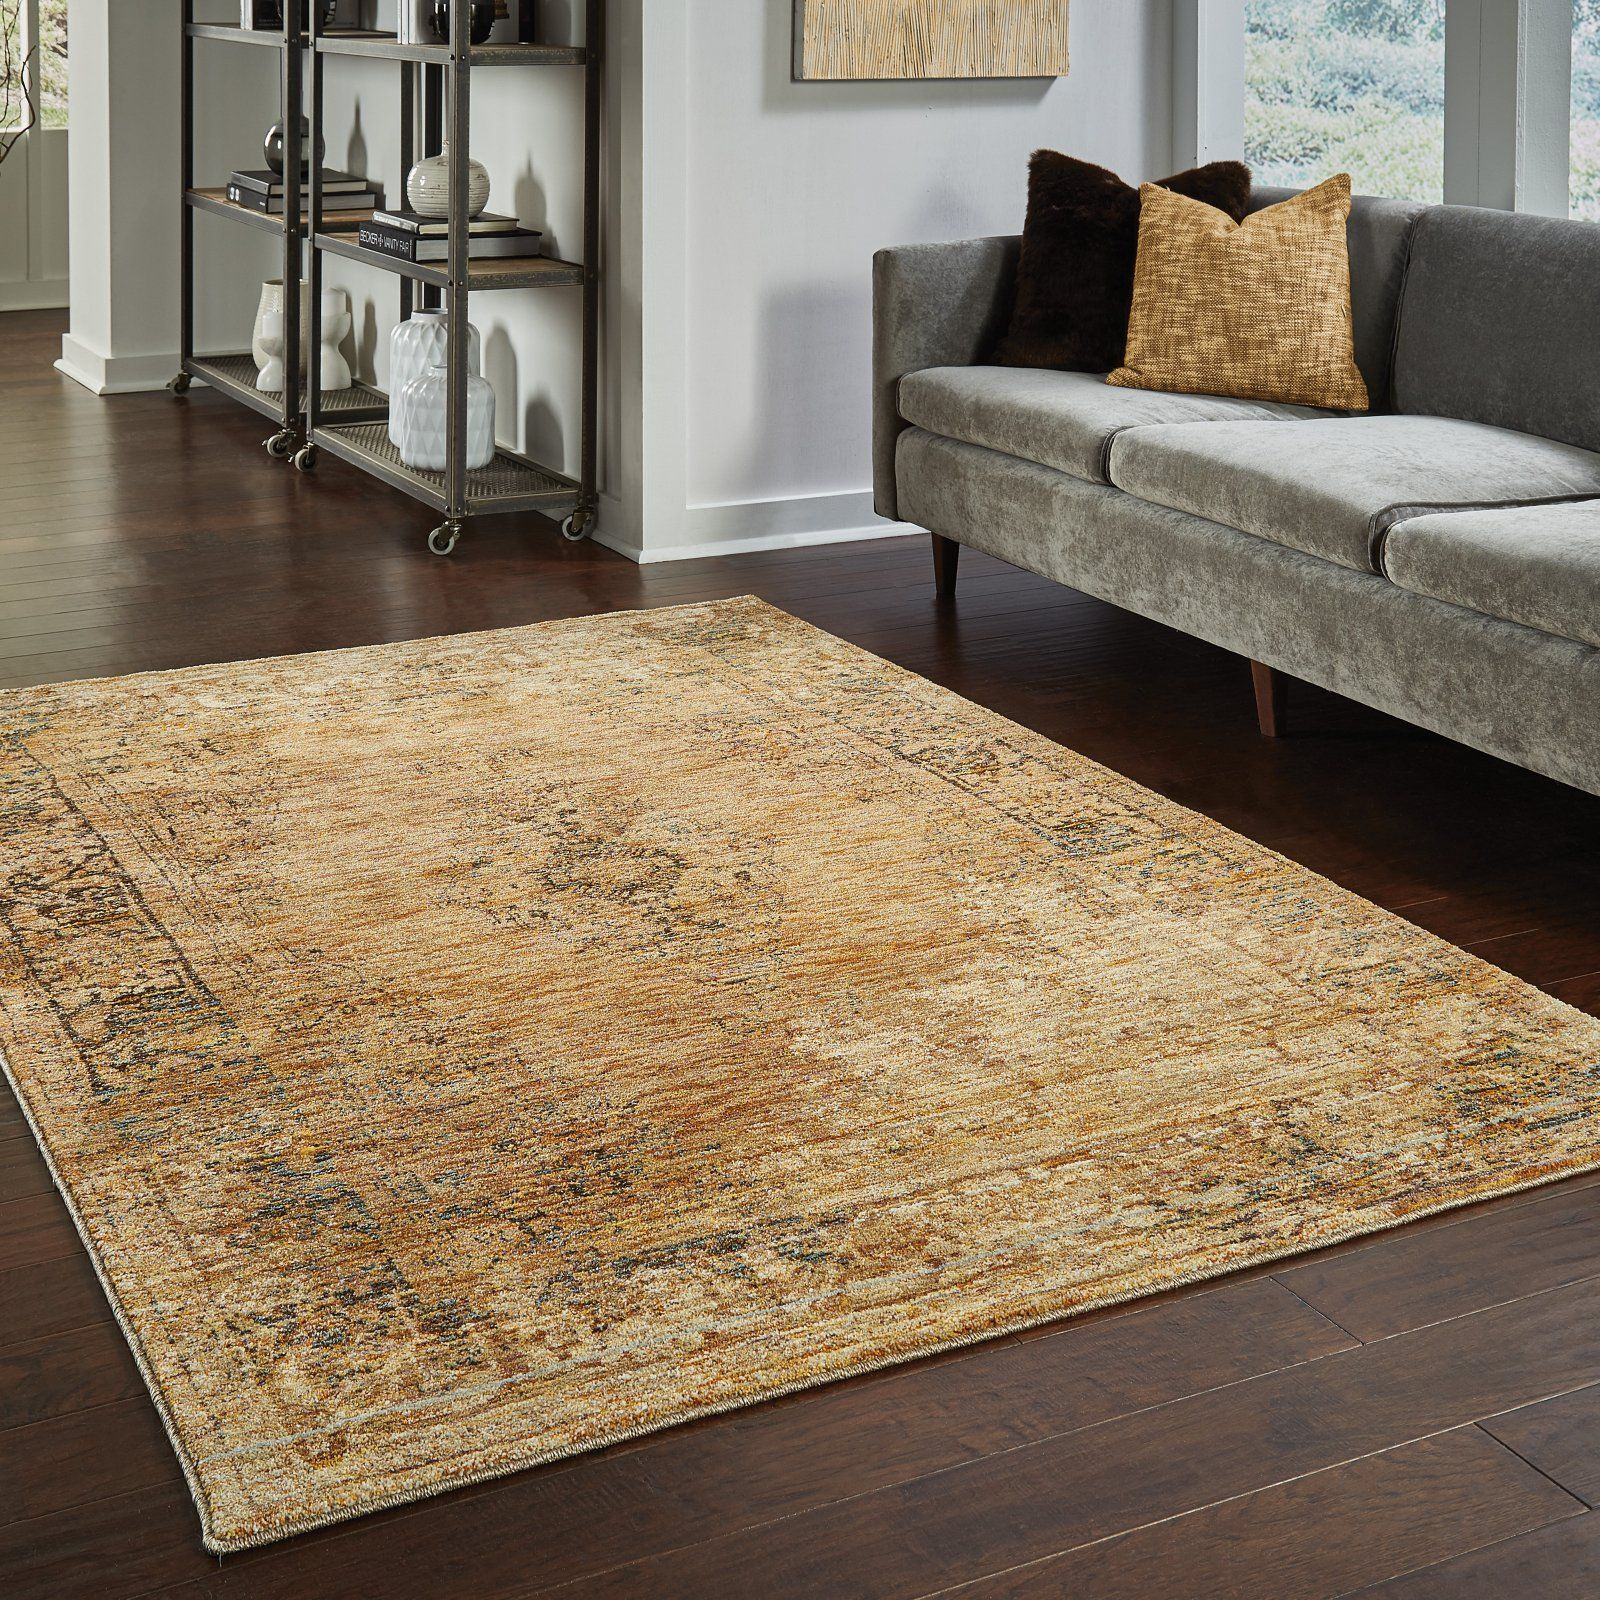 Oriental Weavers Andorra 6845d Gold Brown Area Rug Brown Area Rugs Brown Rug Area Rugs